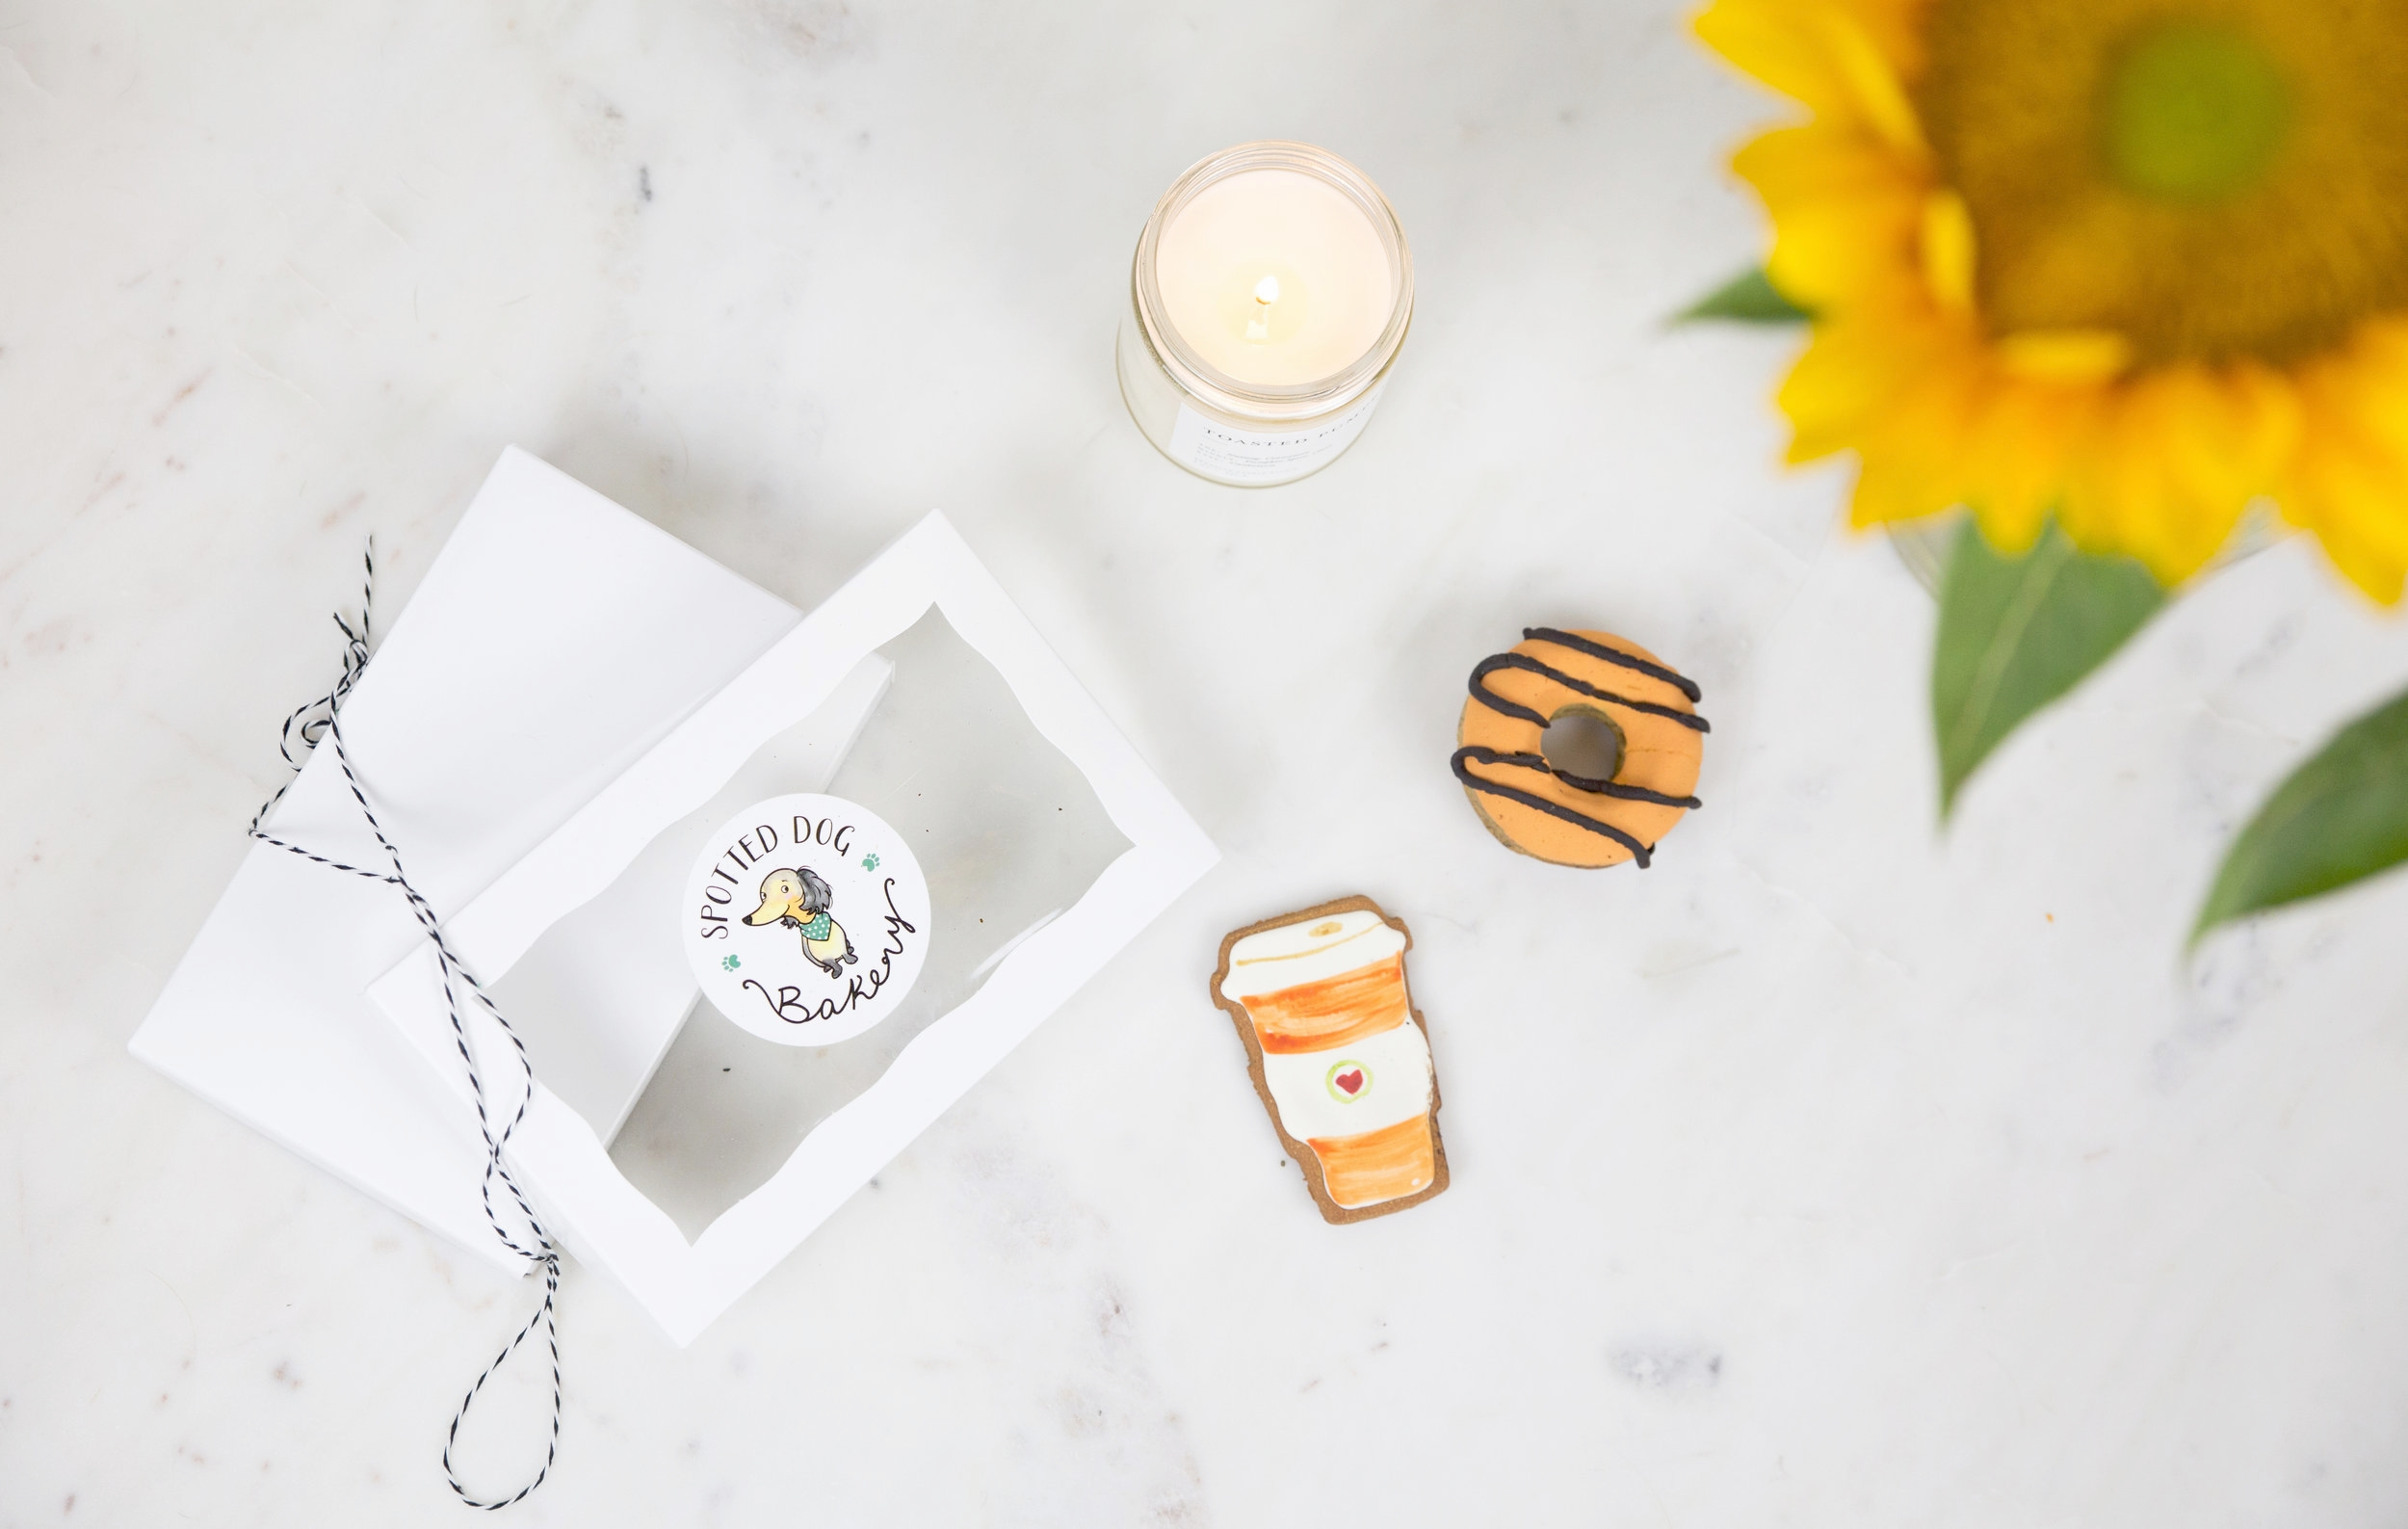 Spotted Dog Bakery Fall Dog Treats Pumpkin Spice Latte and Donut on The Dapple Dog Lifestyle Site